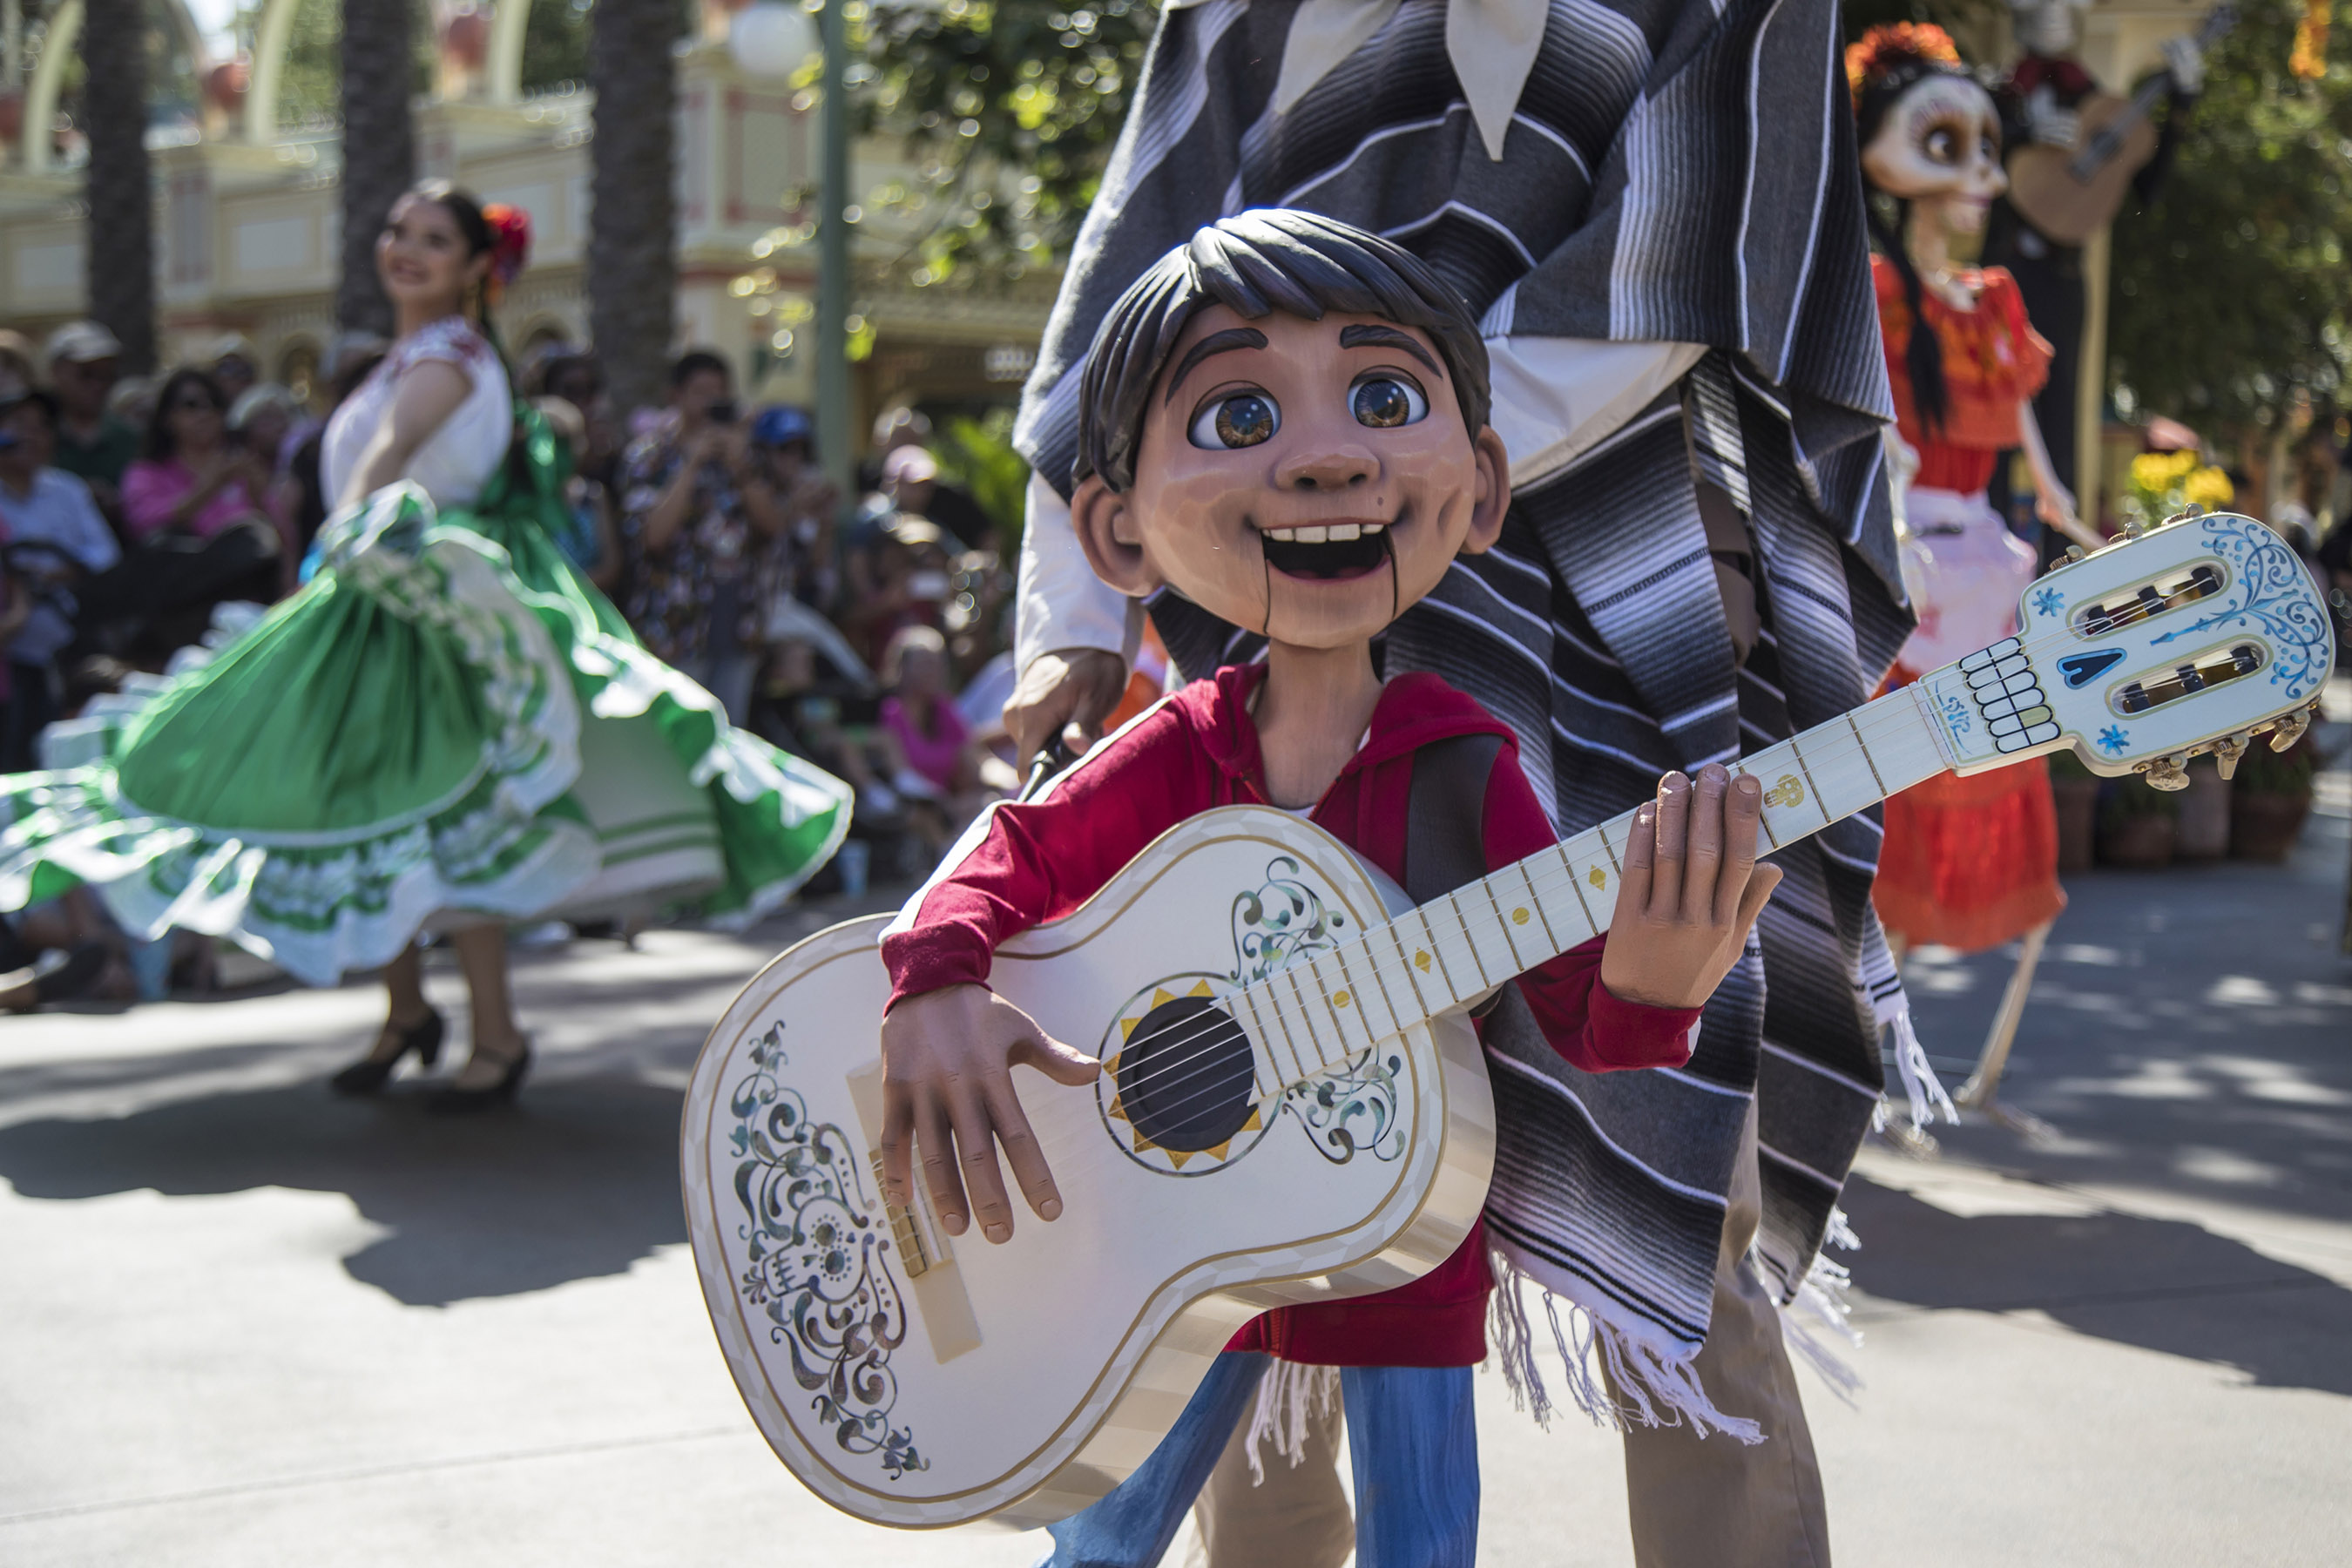 "PLAZA DE LA FAMILIA AT DISNEY CALIFORNIA ADVENTURE PARK (ANAHEIM, Calif.) – Plaza de la Familia, a limited-time festivity at Paradise Gardens, celebrates Disney•Pixar's Academy Award®-winning film ""Coco"" and the everlasting bonds of family. Guests visiting Plaza de la Familia will enjoy an immersive celebration that includes live entertainment with storytelling, folklórico dancers and mariachi musicians, delicious Mexican fare and interactive experiences such as the new craft where guests make colorful masks like the ones seen in the ""Coco"" film. This celebration runs from Sept. 7 through Nov. 4, 2018 at Disney California Adventure Park. (Joshua Sudock/ Disneyland)"